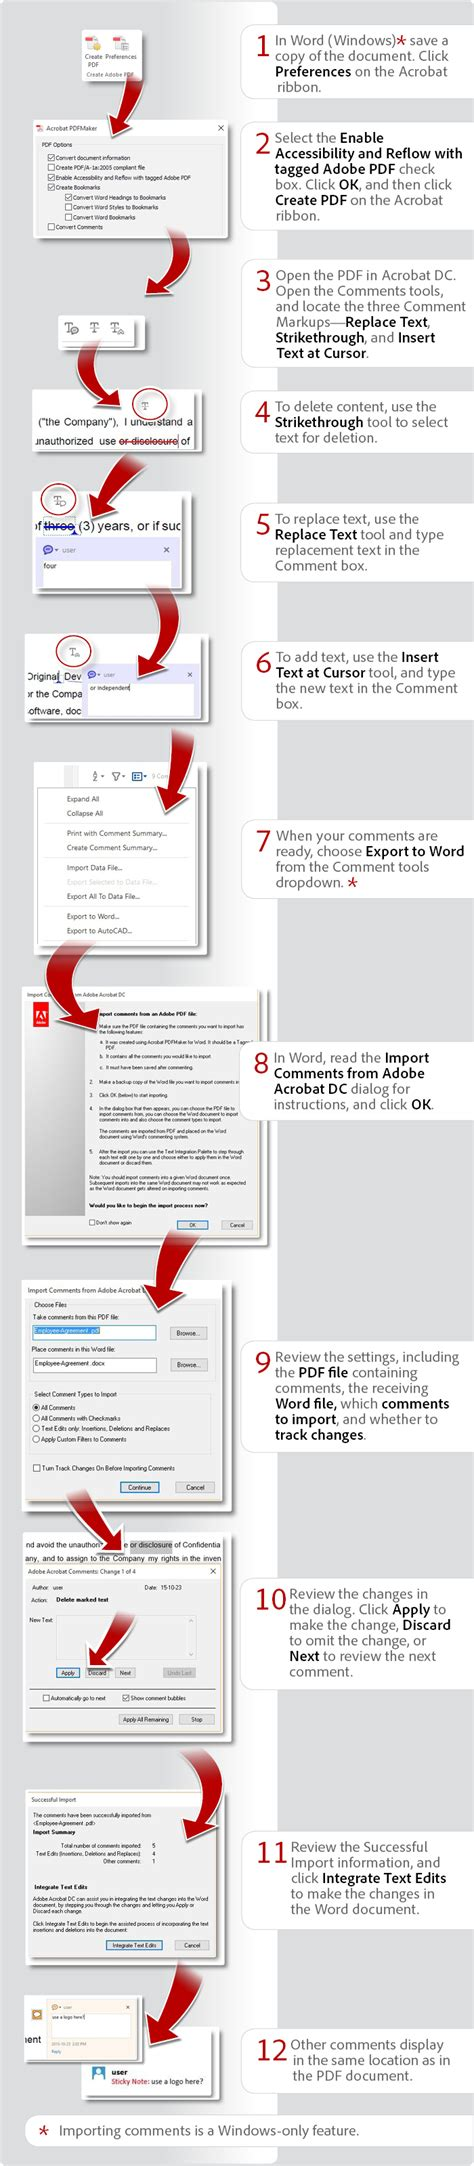 convert pdf to word using adobe acrobat dc how to convert pdf to word pdf to word converter how to